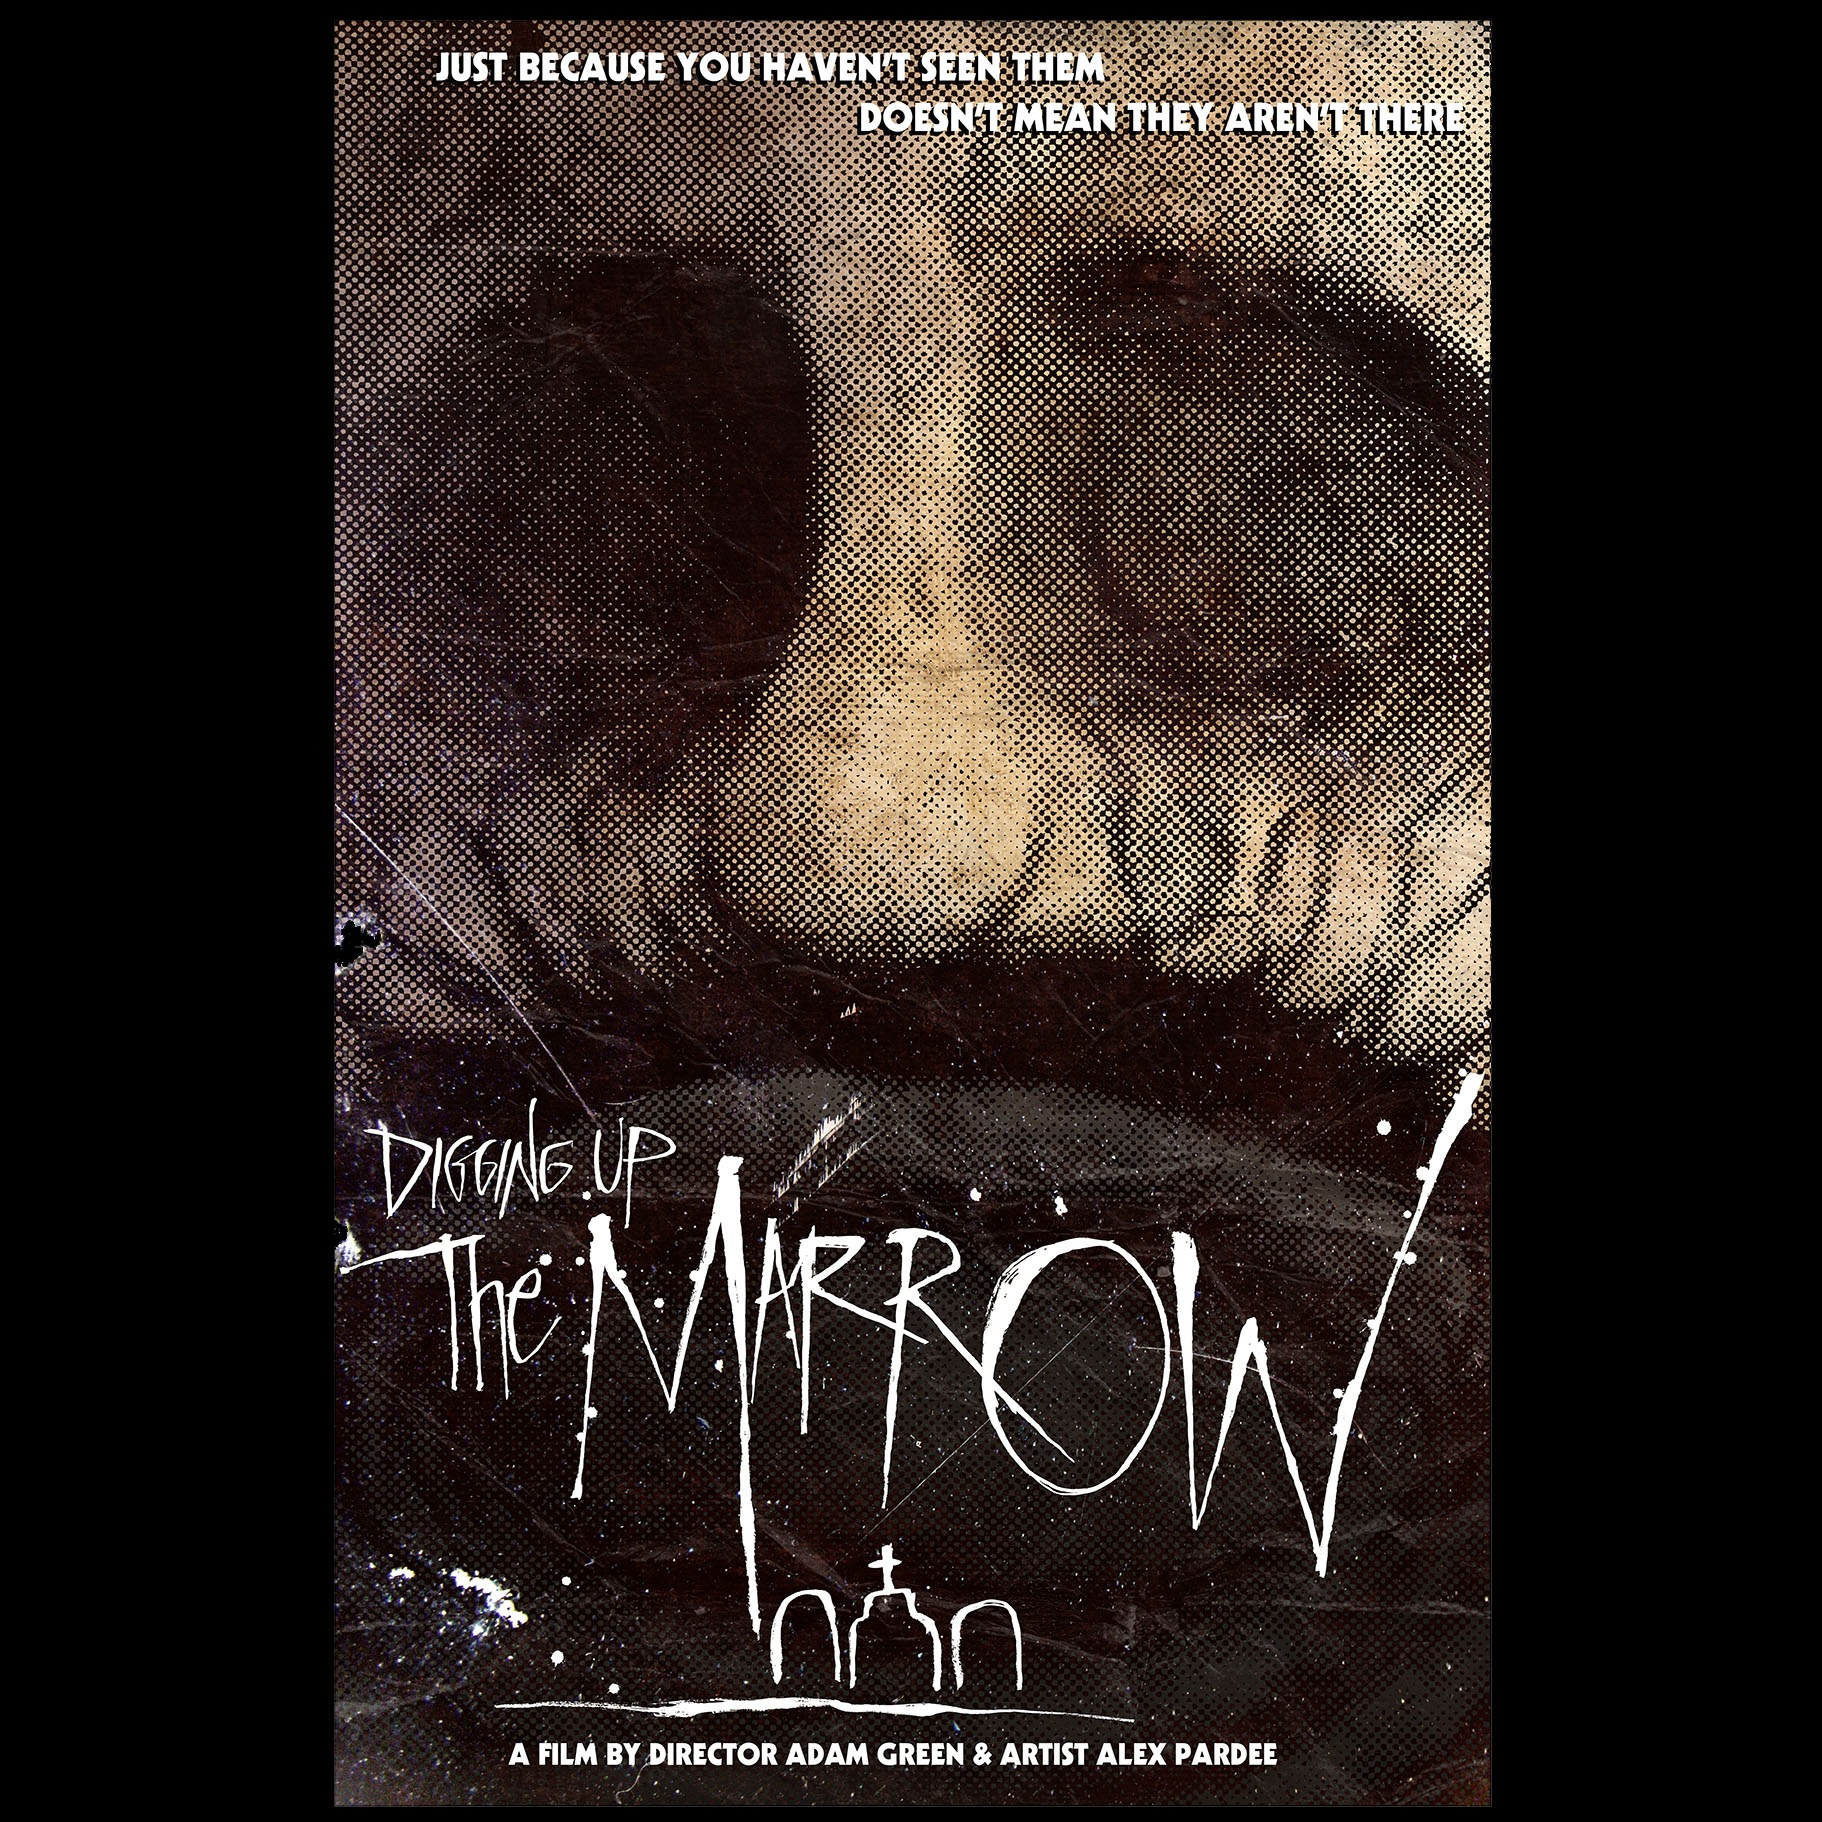 digging up the marrow 2014 trailer